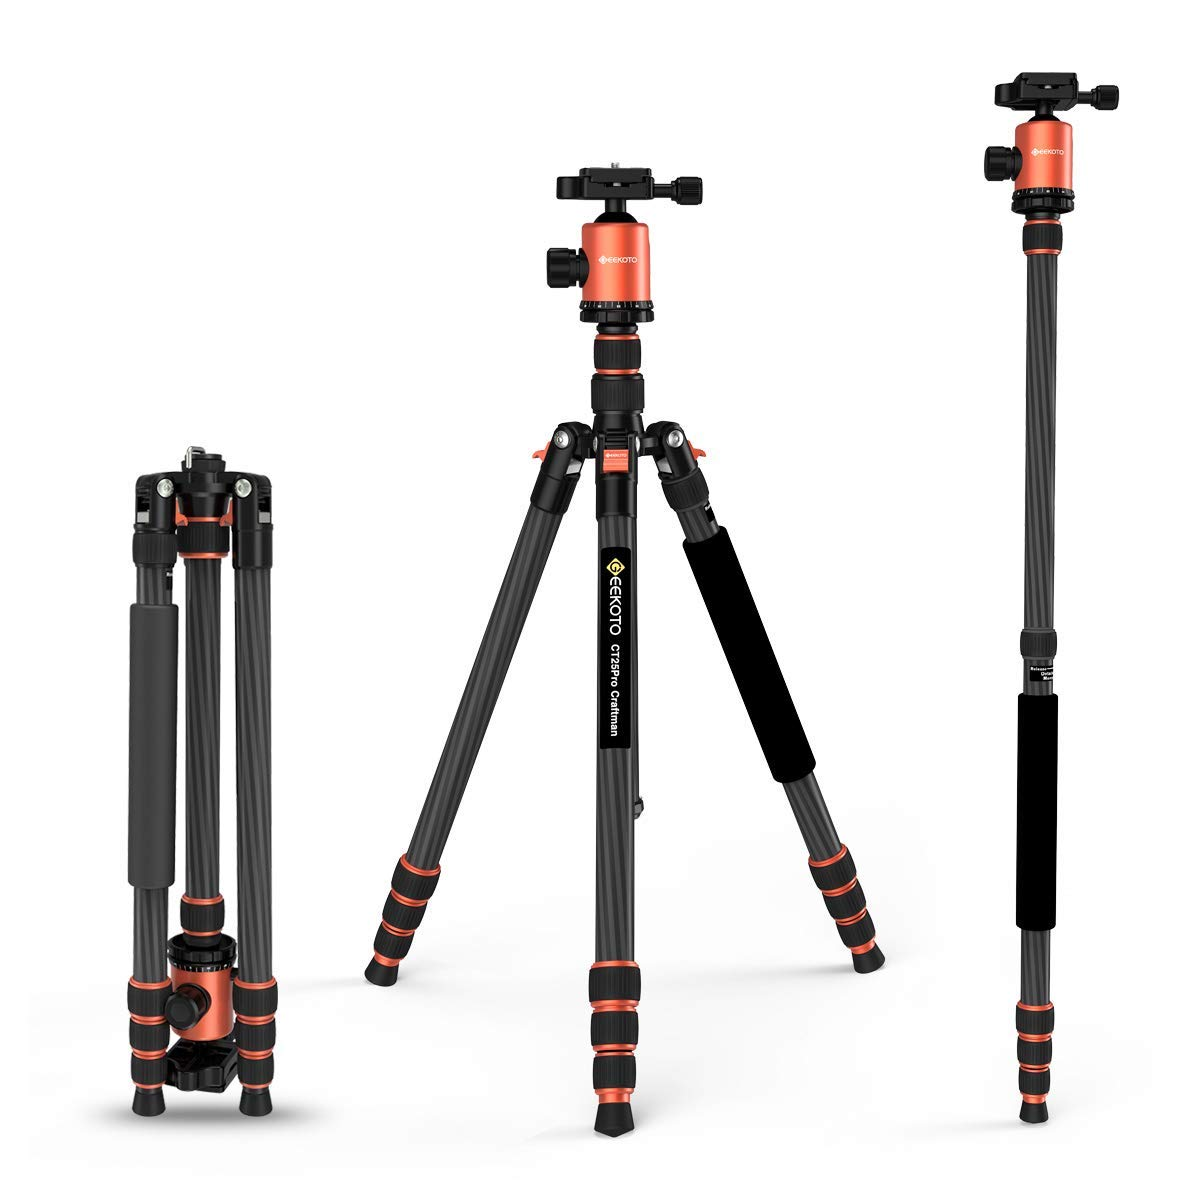 GEEKOTO 79 inches Carbon Fiber Camera Tripod Monopod with 360 Degree Ball Head 1/4 inch Quick Shoe Plate Professional Tripod Load up to 26.5 pounds by GEEKOTO